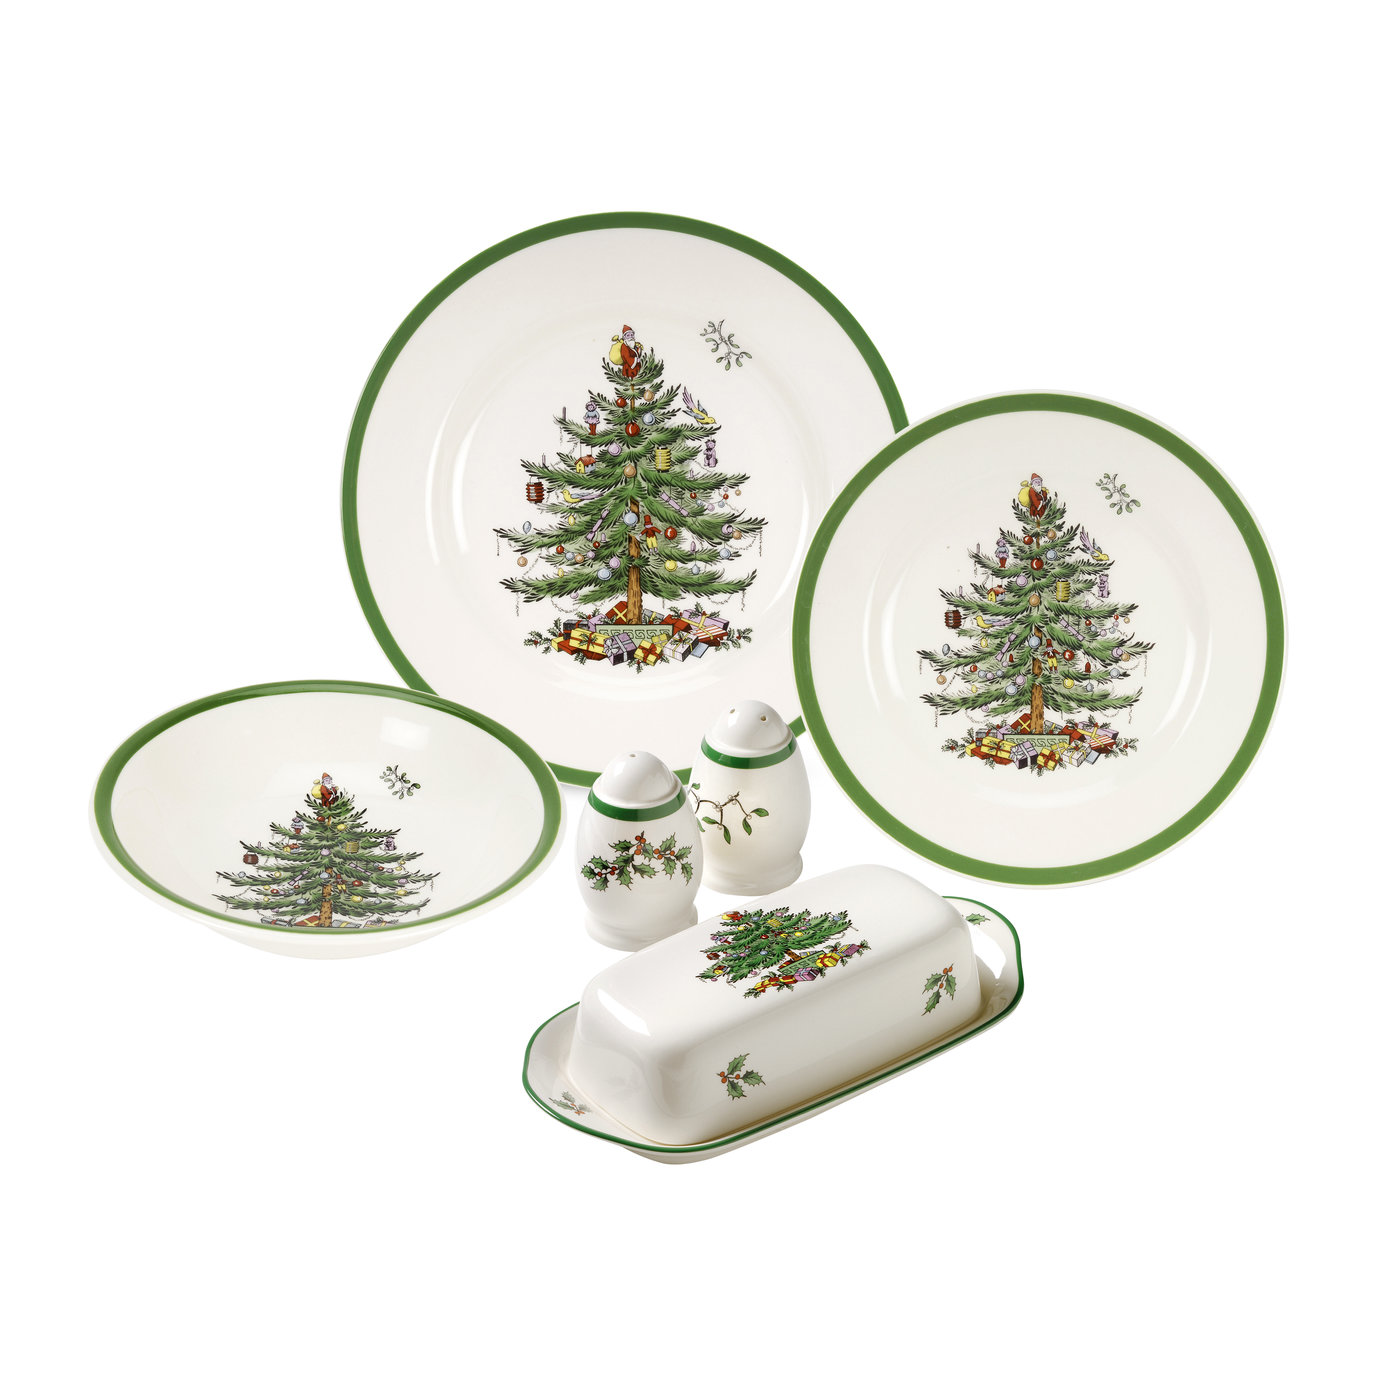 Spode Christmas Tree 28-Piece Set with Shallow Cereal Bowl image number 0